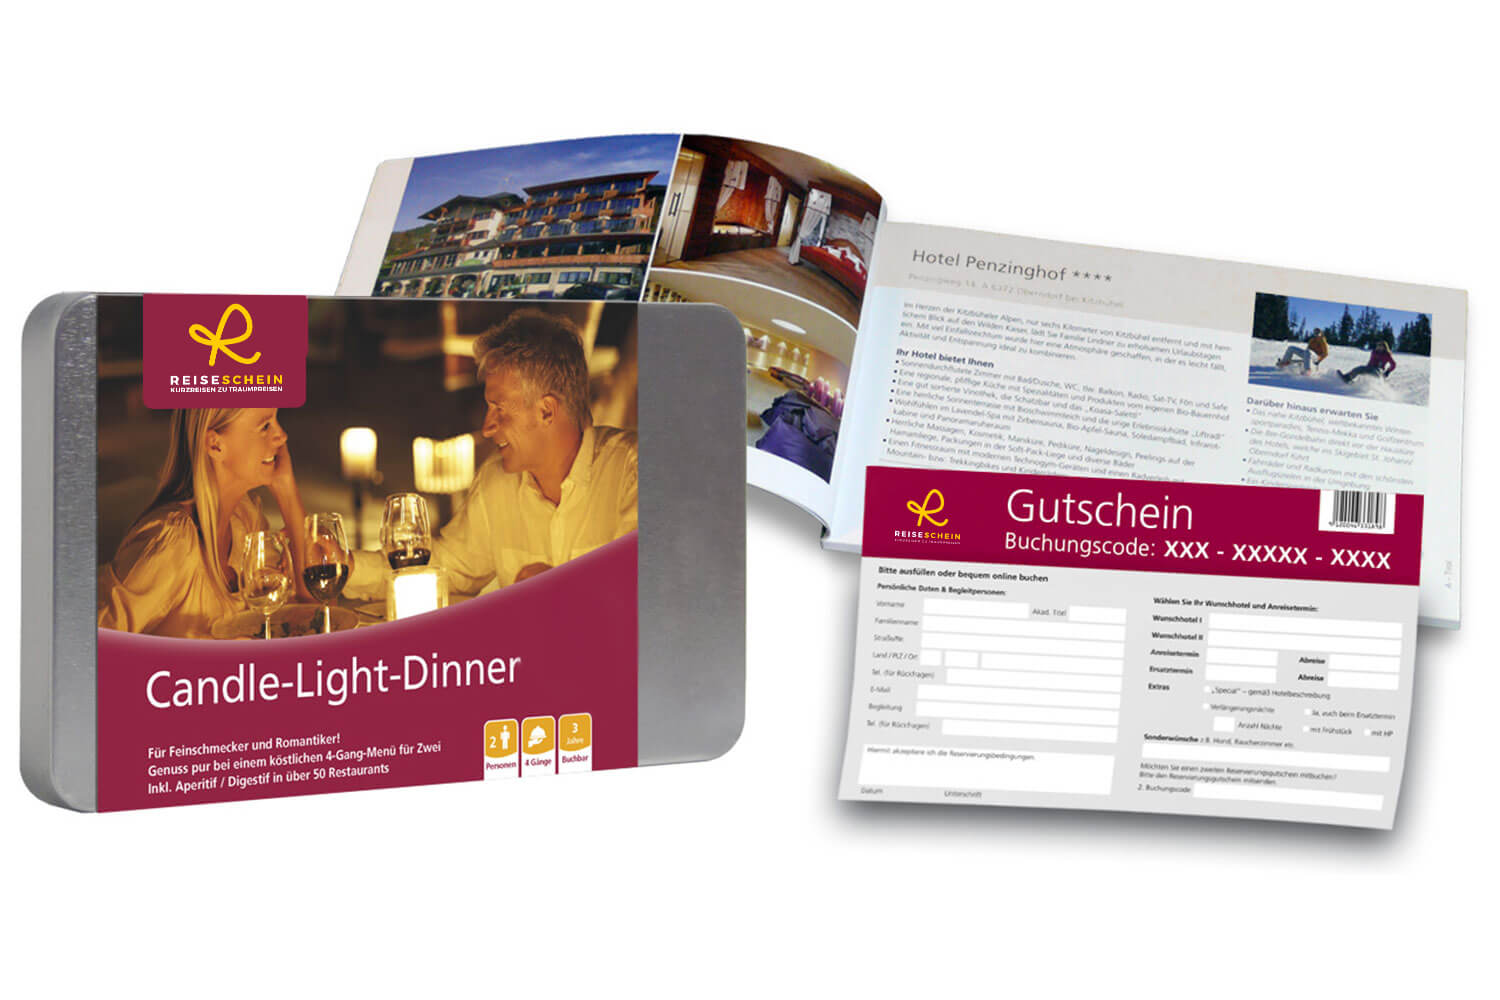 Candle-Light-Dinner  -  1 x 4-gängiges Menü für 2 in über 90 Restaurants  -  Ideal zum Verschenken